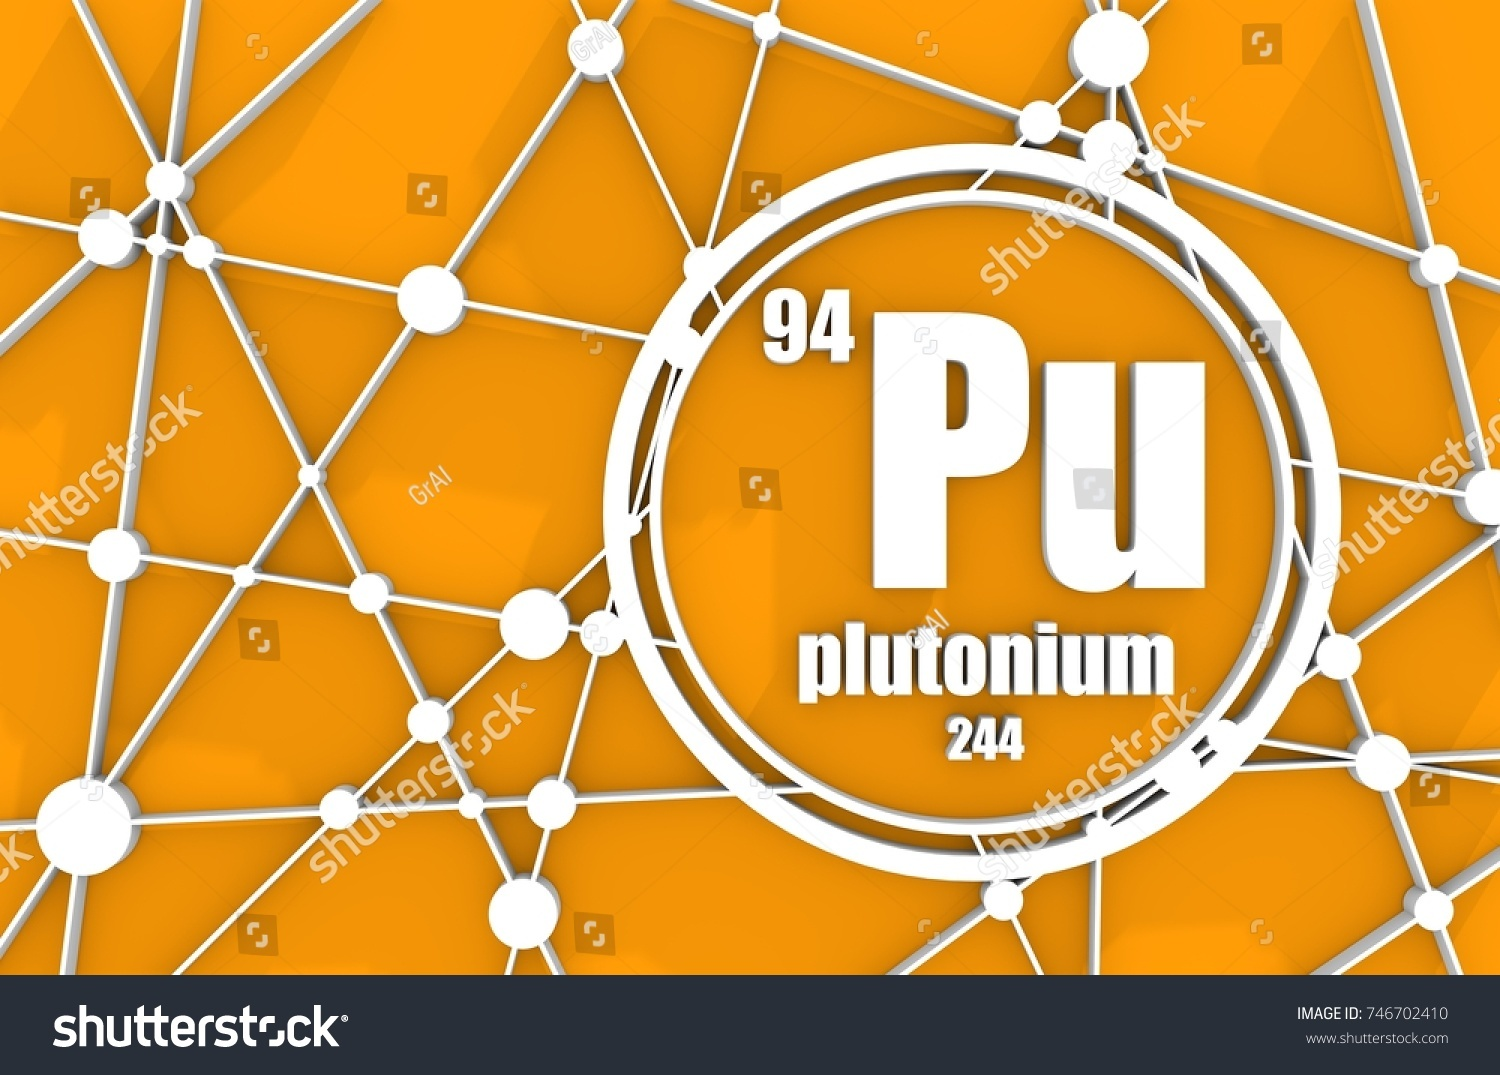 Plutonium chemical element sign atomic number stock illustration plutonium chemical element sign with atomic number and atomic weight chemical element of periodic biocorpaavc Image collections